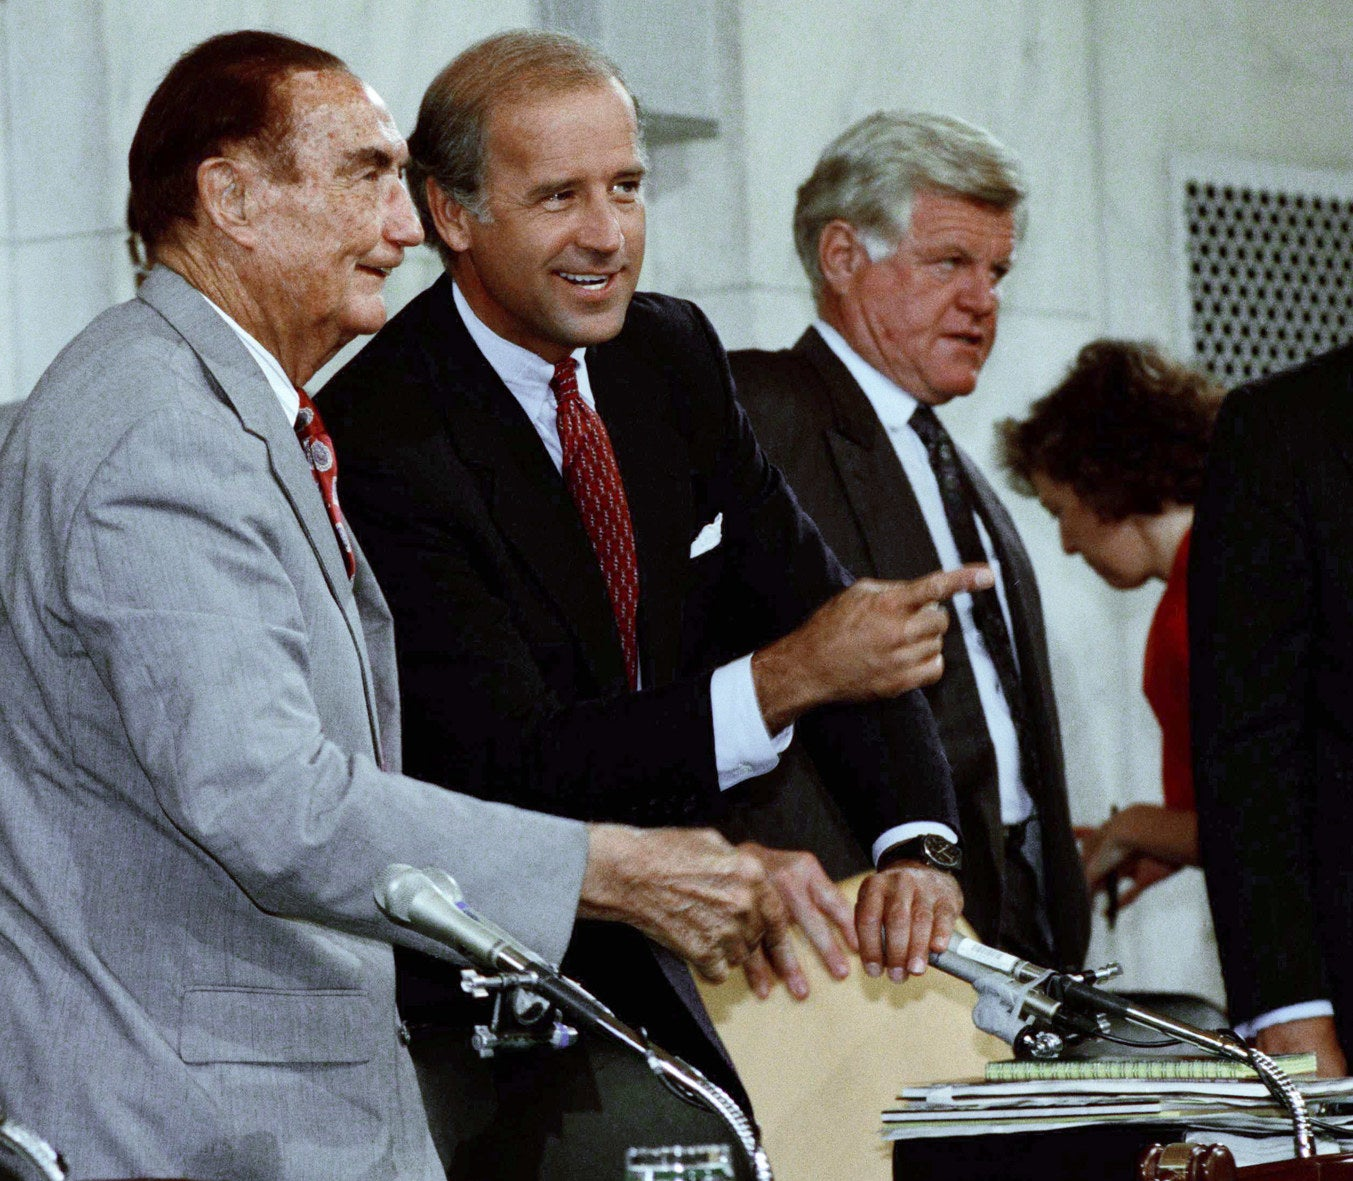 Joe Biden Once Spoke At Strom Thurmond's Memorial Service. How Do People Feel About That Now?